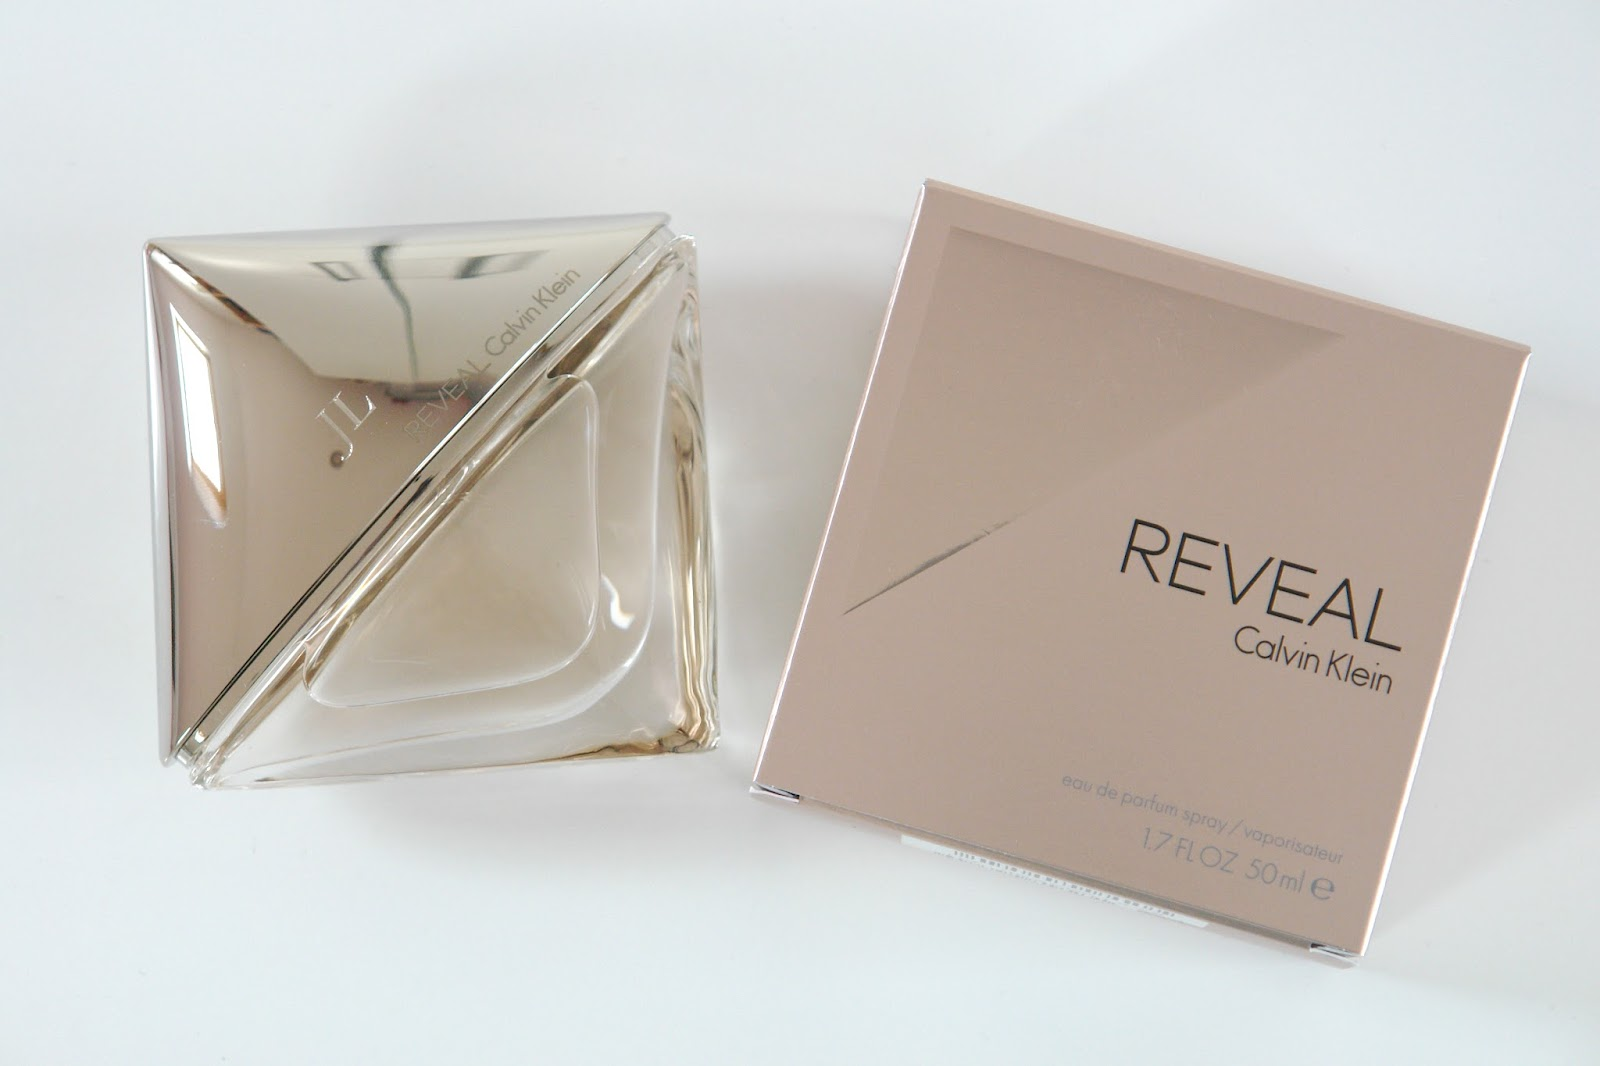 Calvin Klein Reveal perfume review